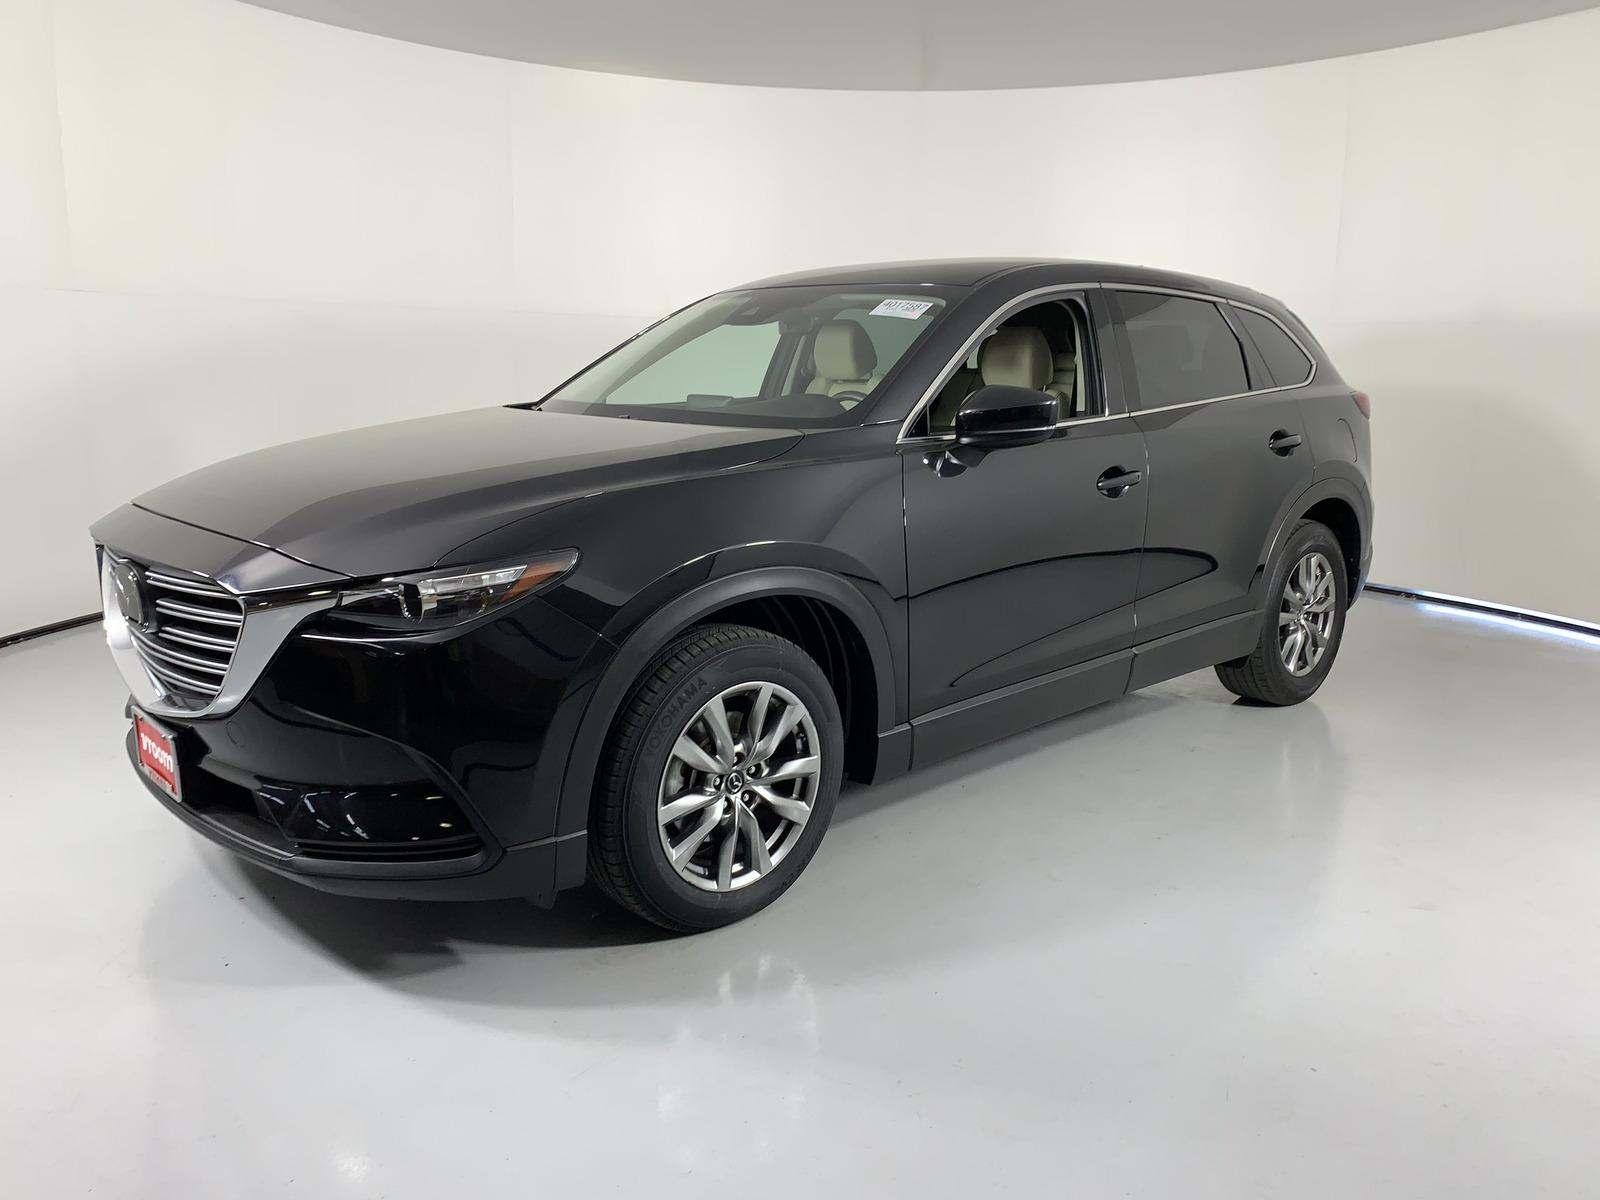 Used Mazda CX-9s for Sale: Buy Online + Home Delivery | Vroom